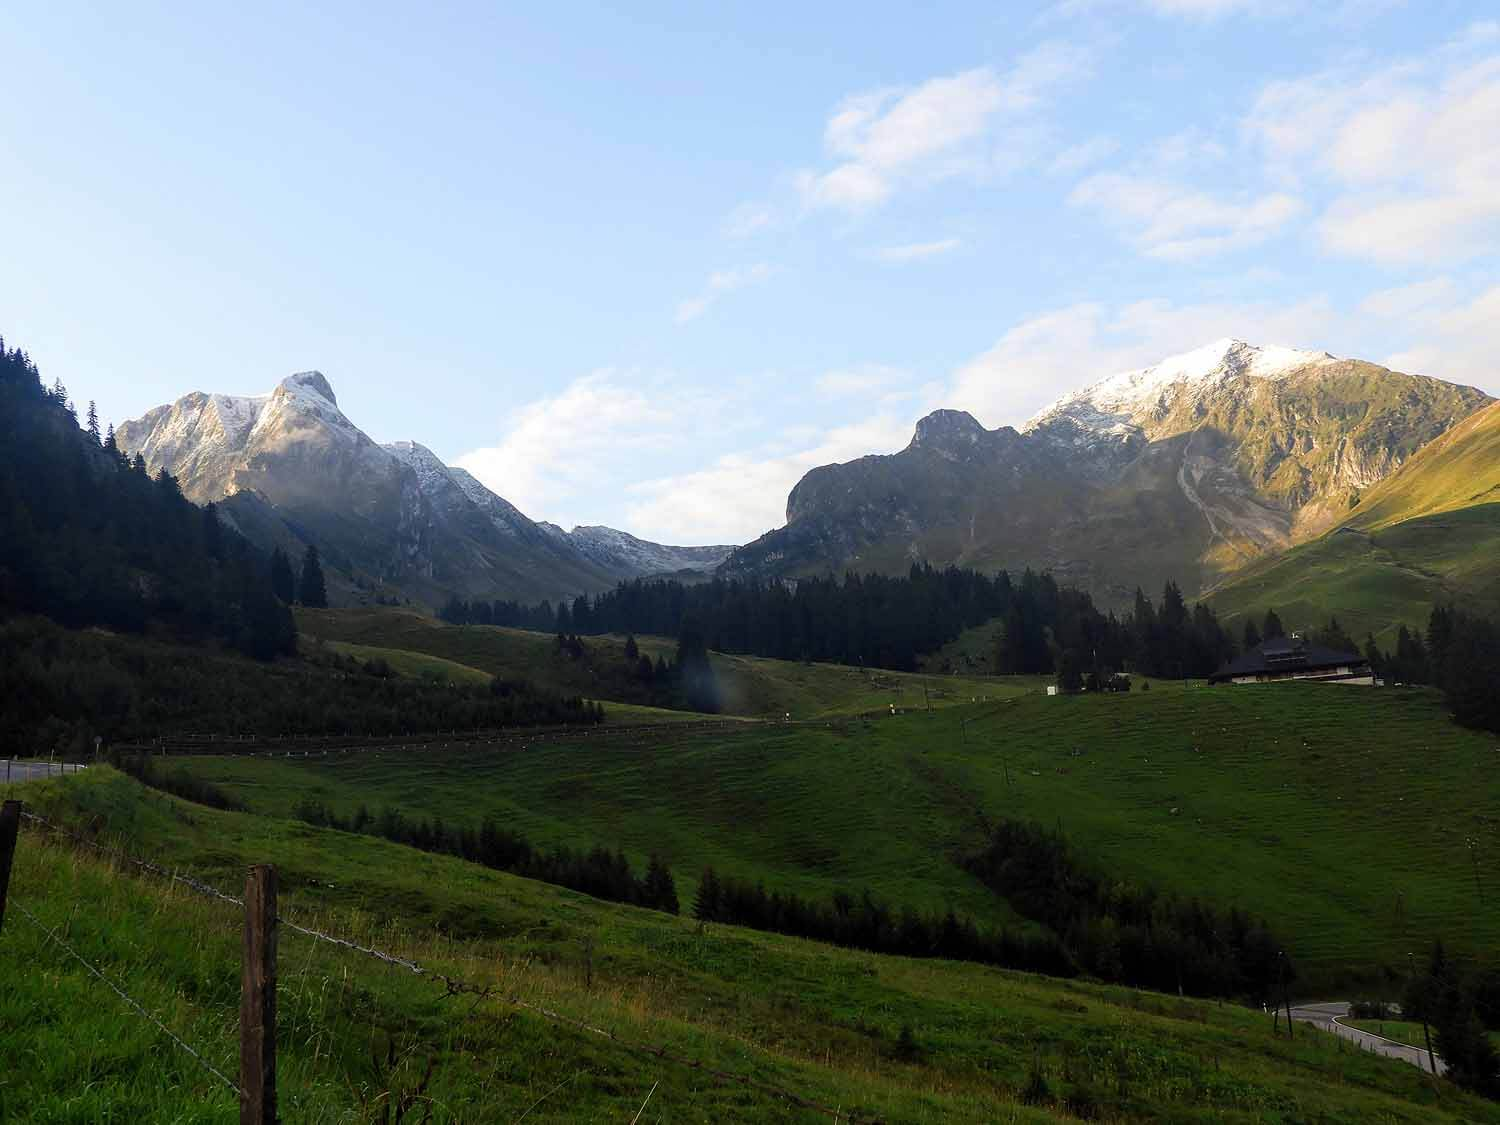 Gurnigel Pass - After leaving Fribourg we took the scenic rout over the mountains toward the east.